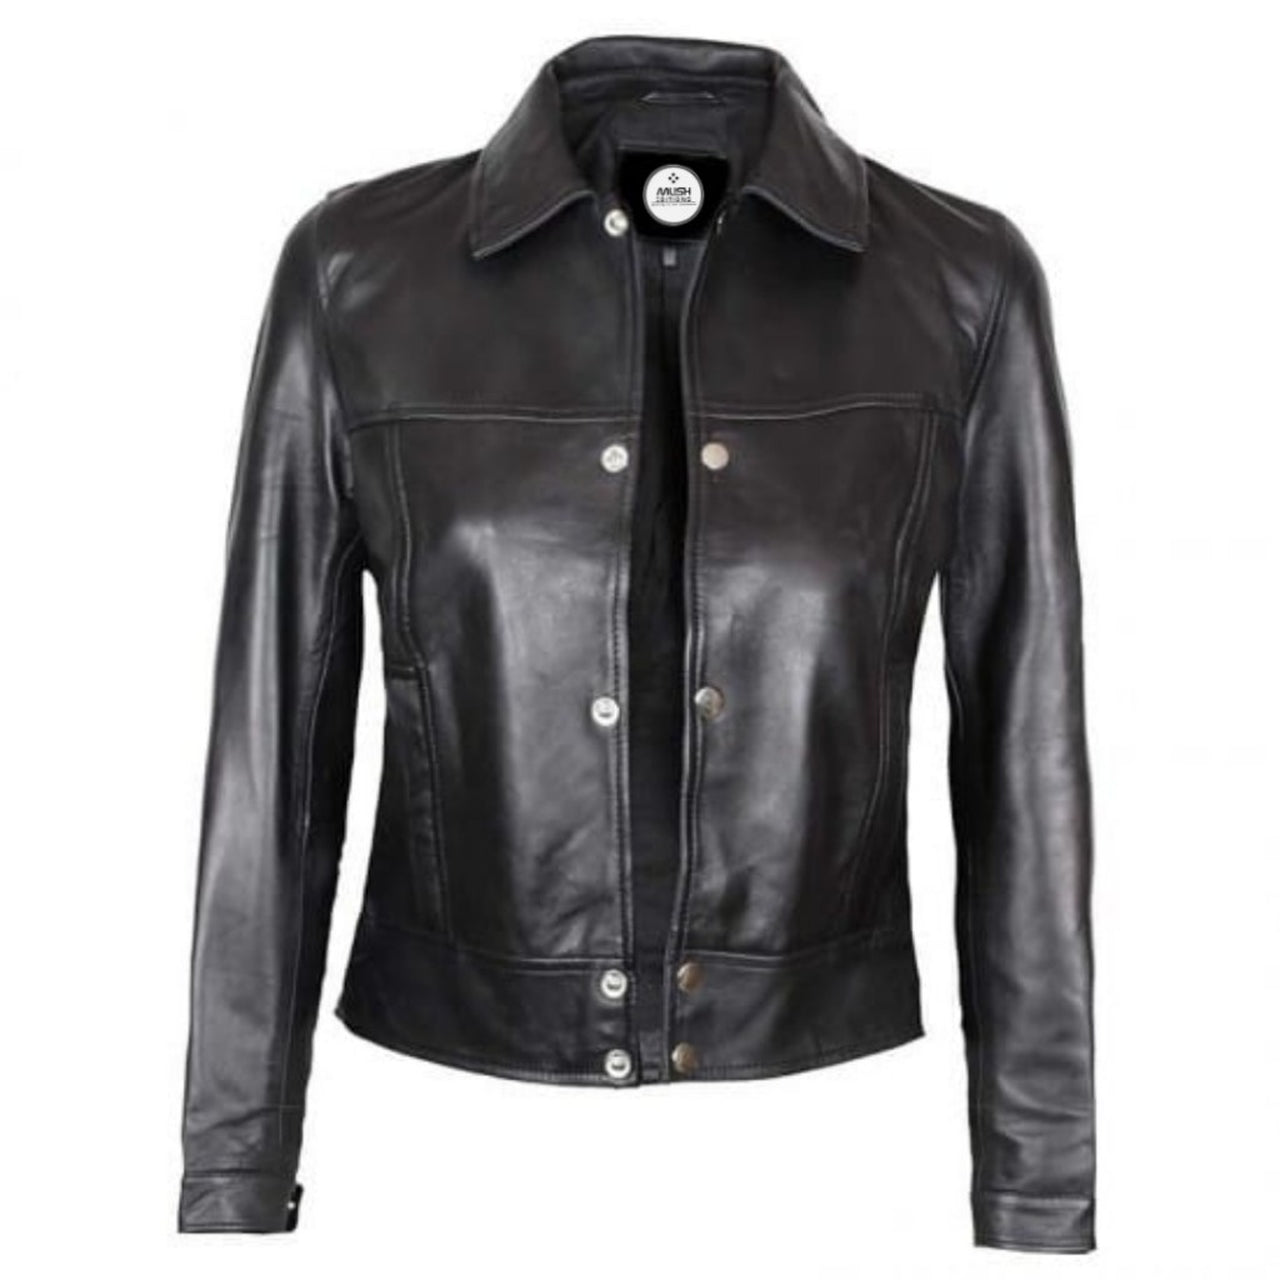 Black Button Up Casual Leather Jacket For Women - Leather Jacket